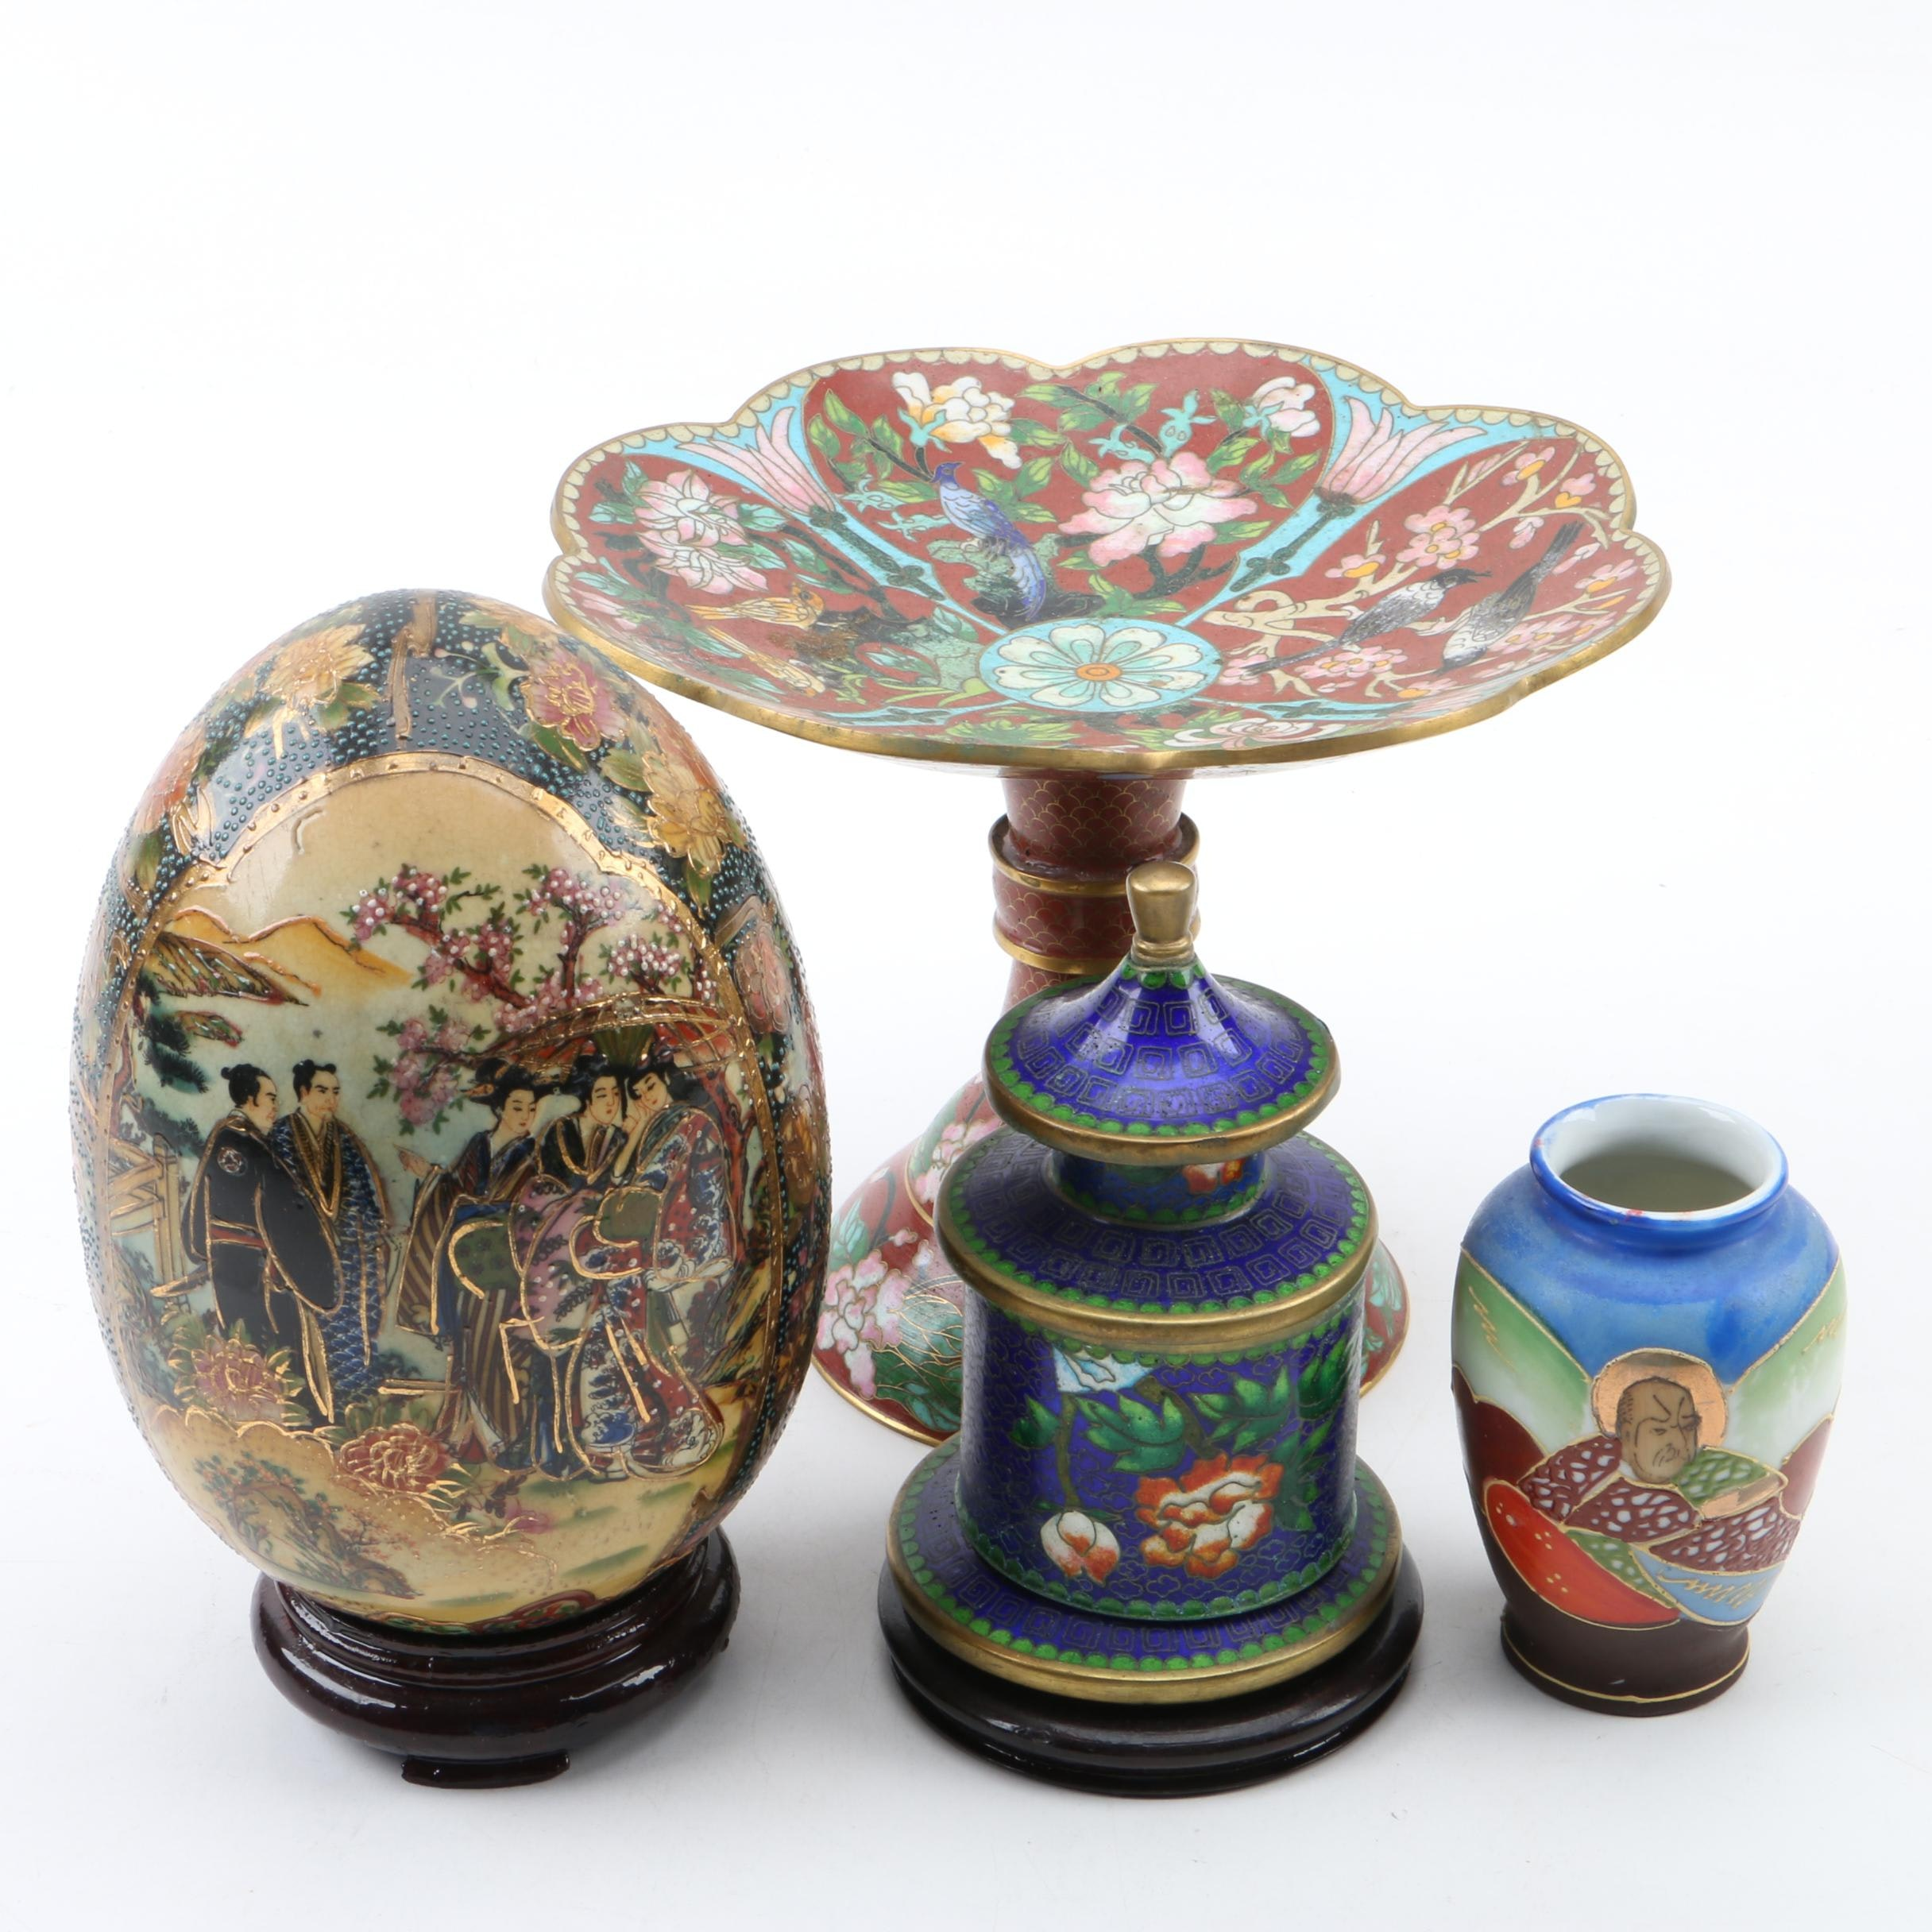 Chinese Royal Satsuma, Occupied Japan and Cloisonne Decor